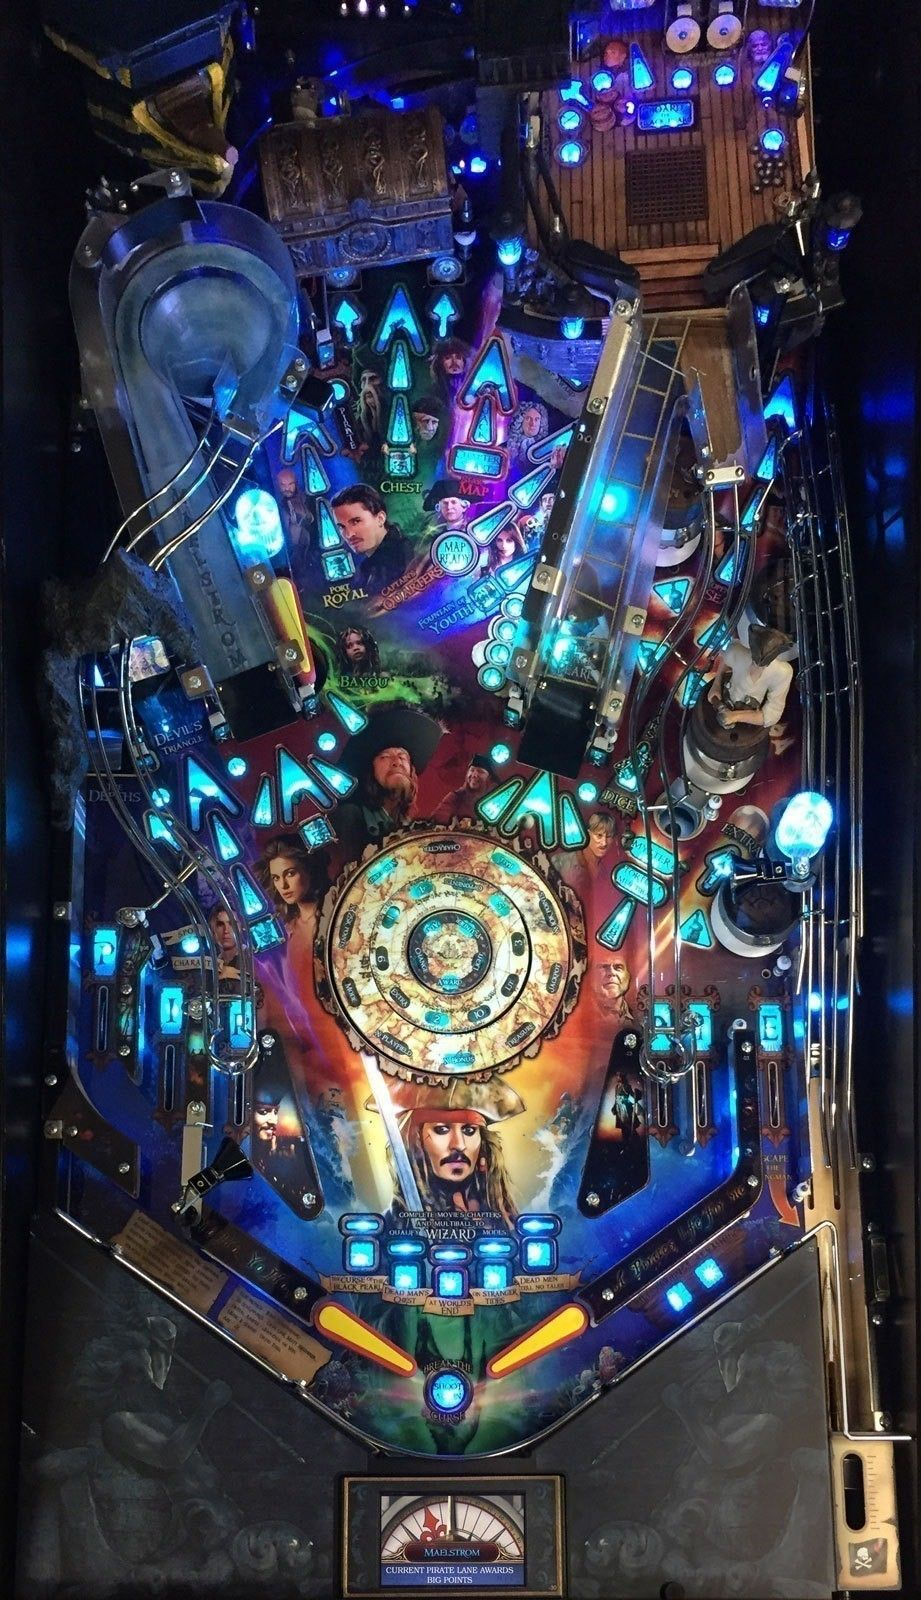 Pin by Steve Kirby on Pinball Pirates of the caribbean